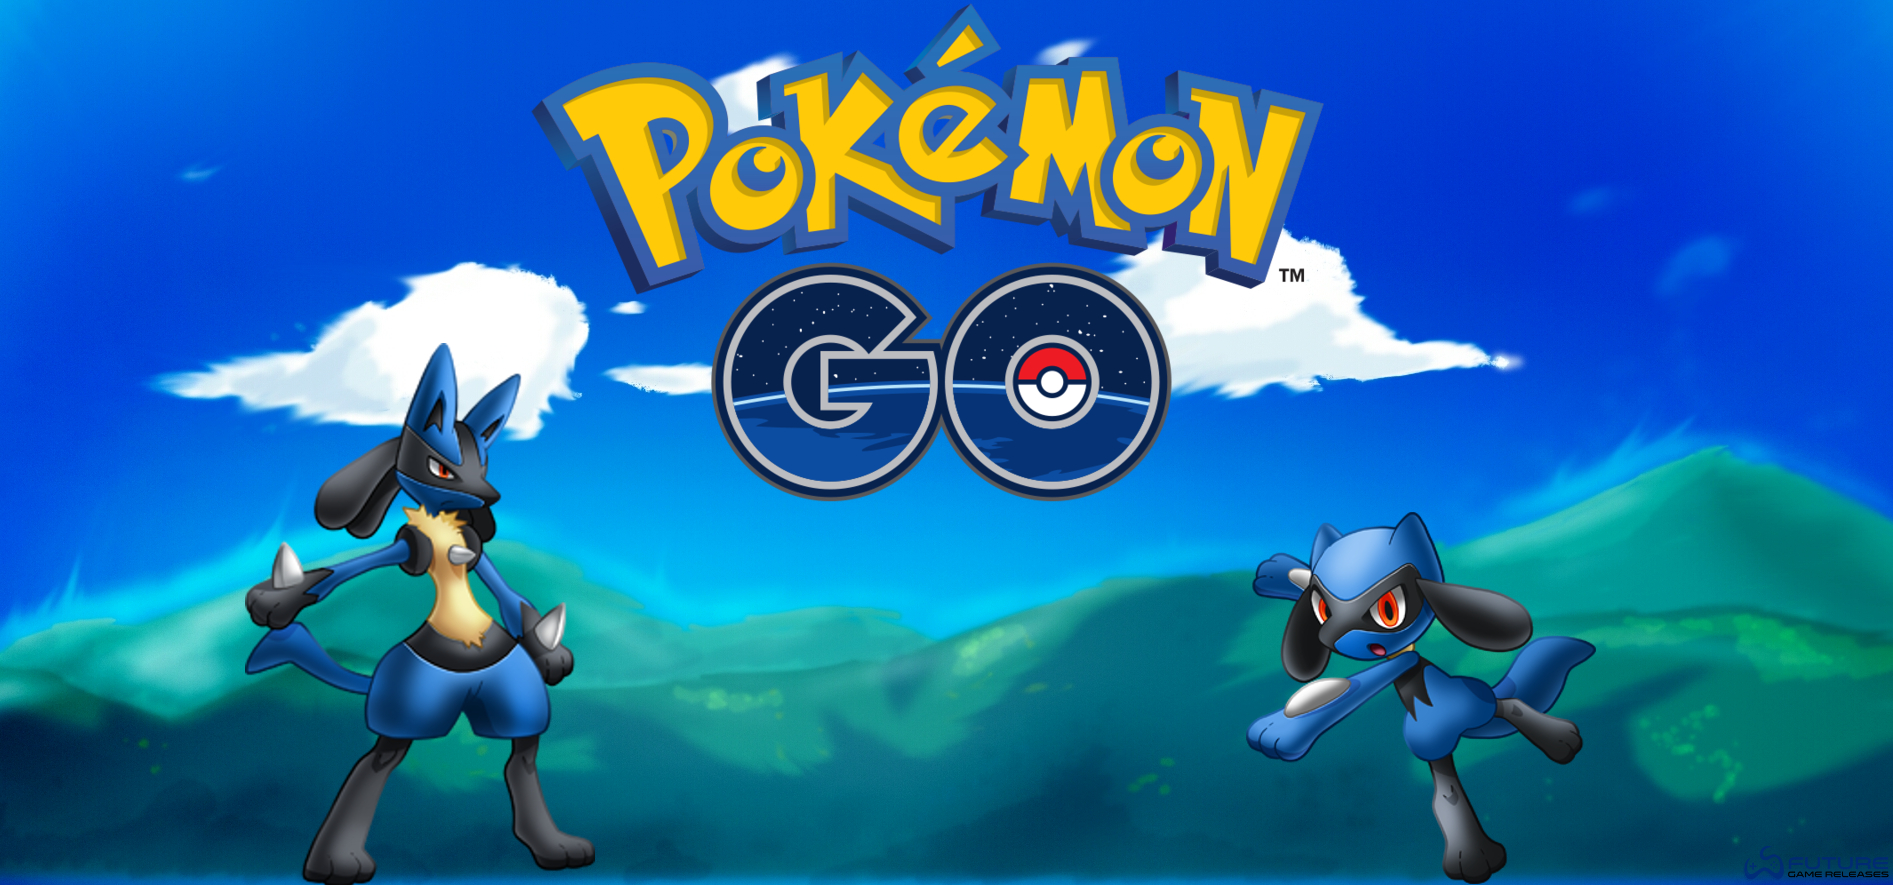 Photo of Pokemon Go Players Will Walk 1,000KM or Spend Real Money to Get Riolu According to Analysis